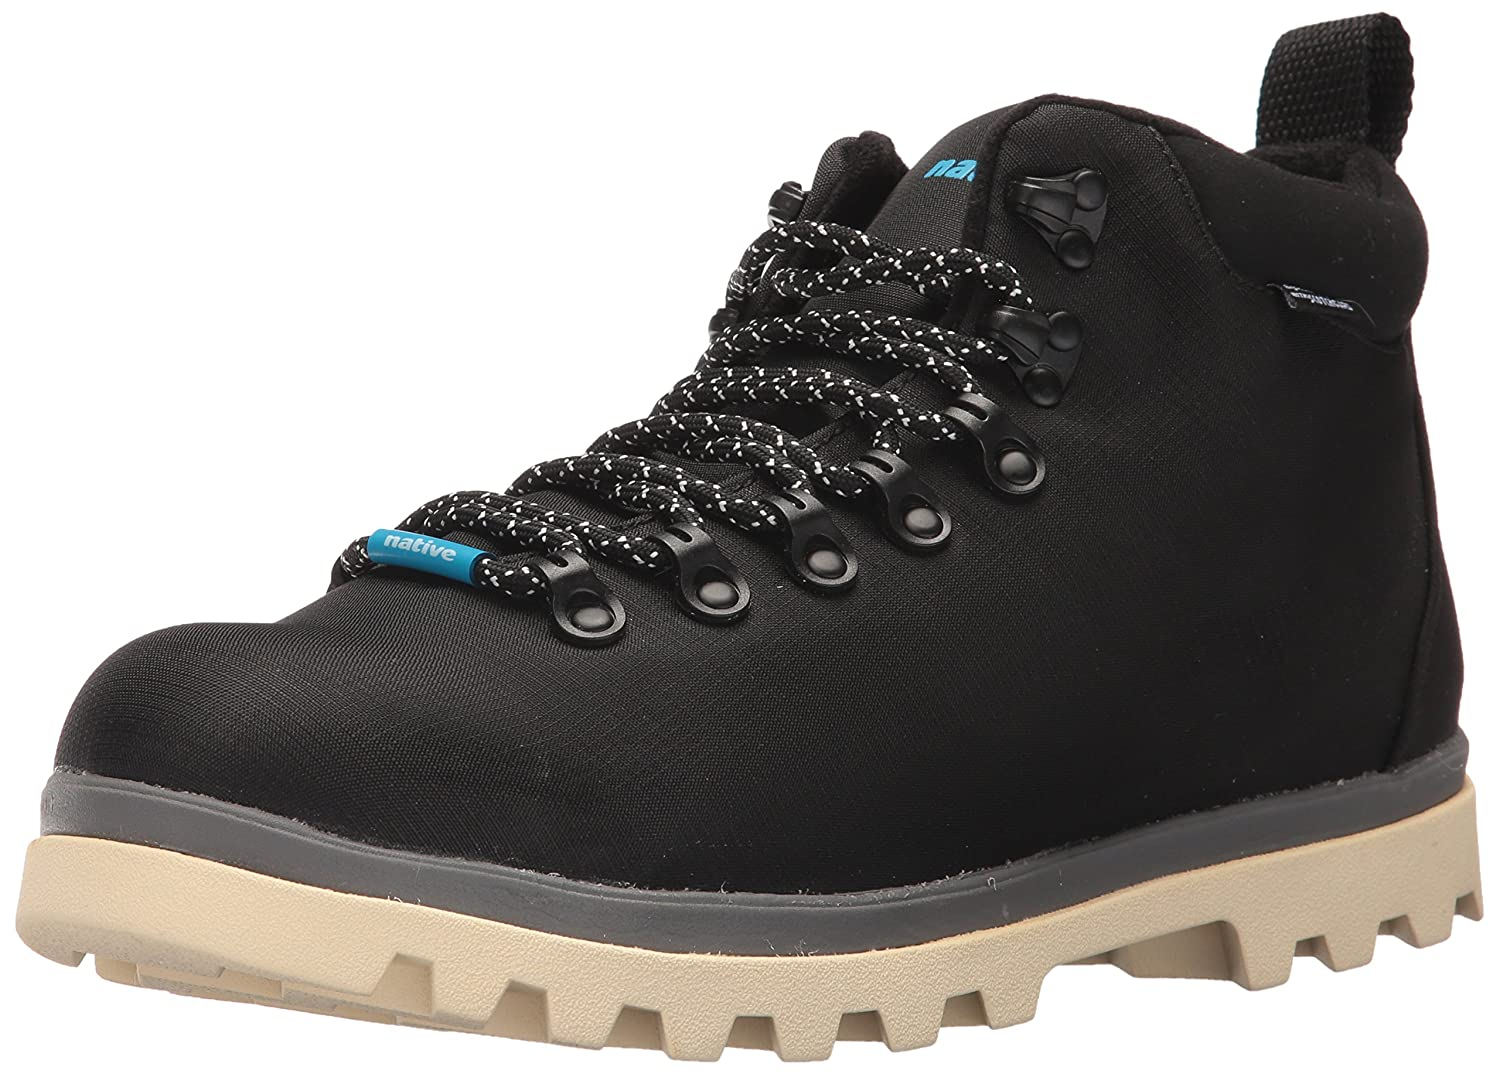 Native Men's Fitzsimmons Treklite Boot Rain